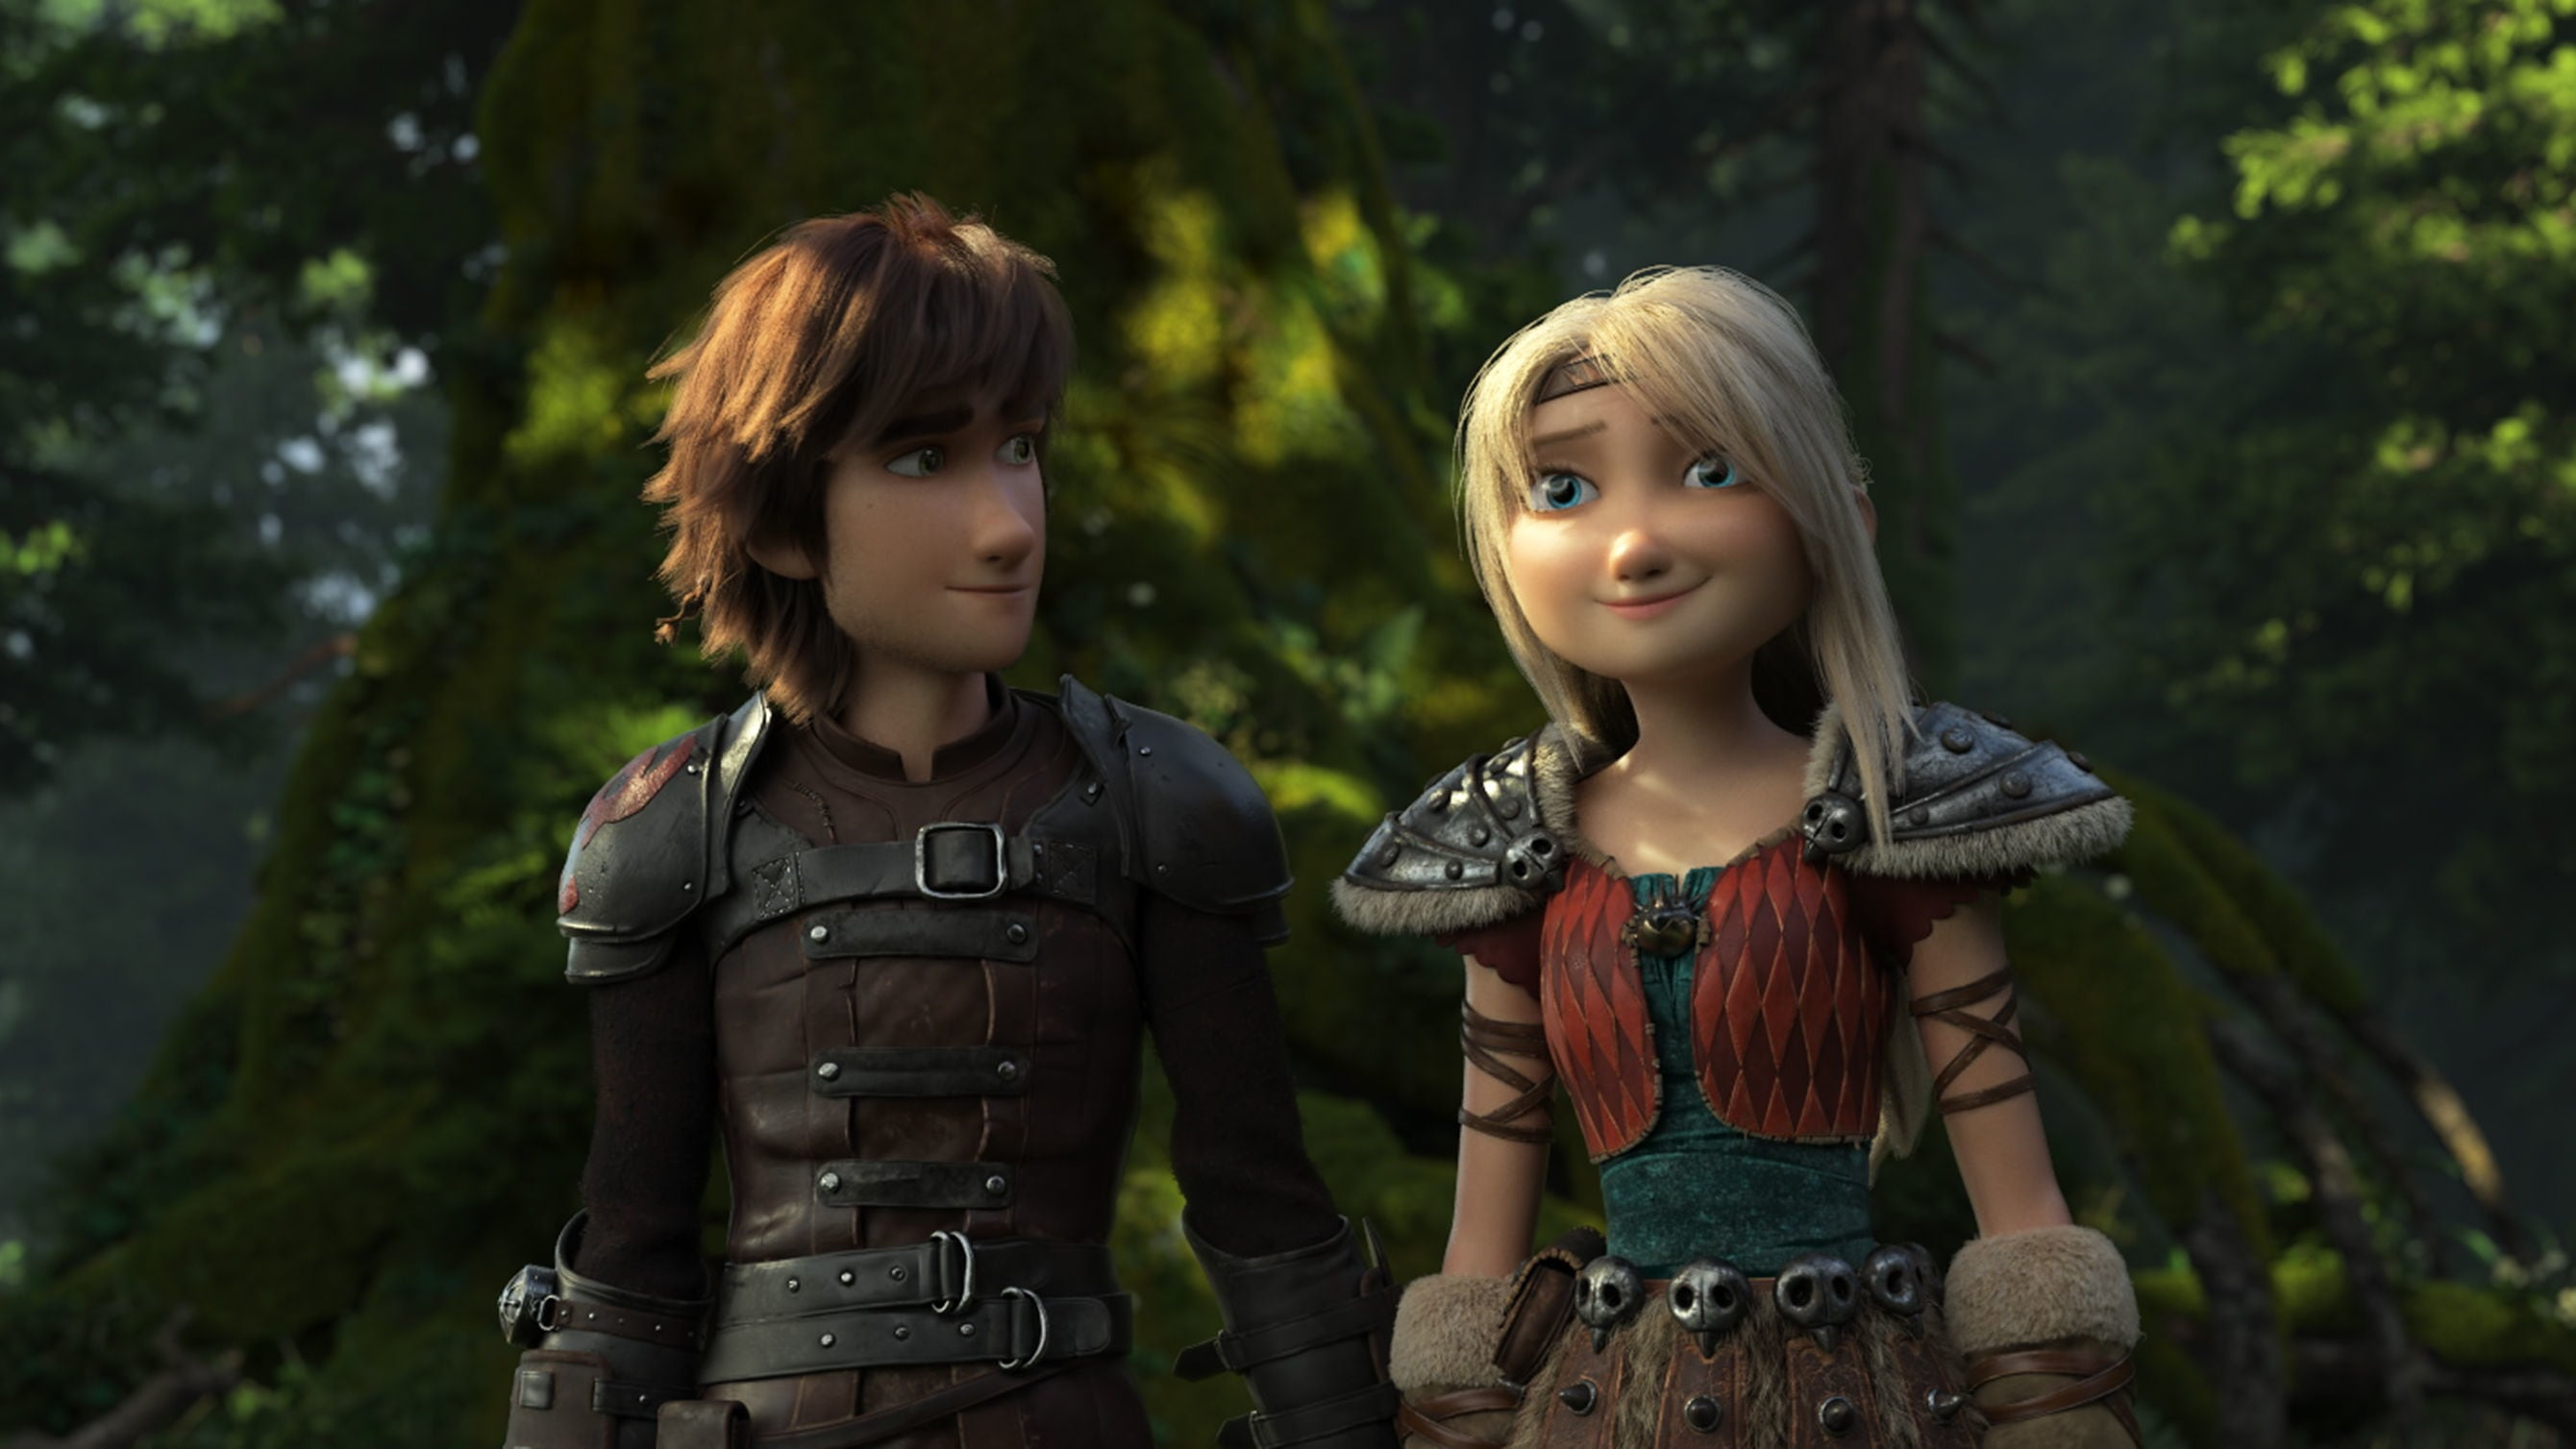 How to train your dragon book review christian